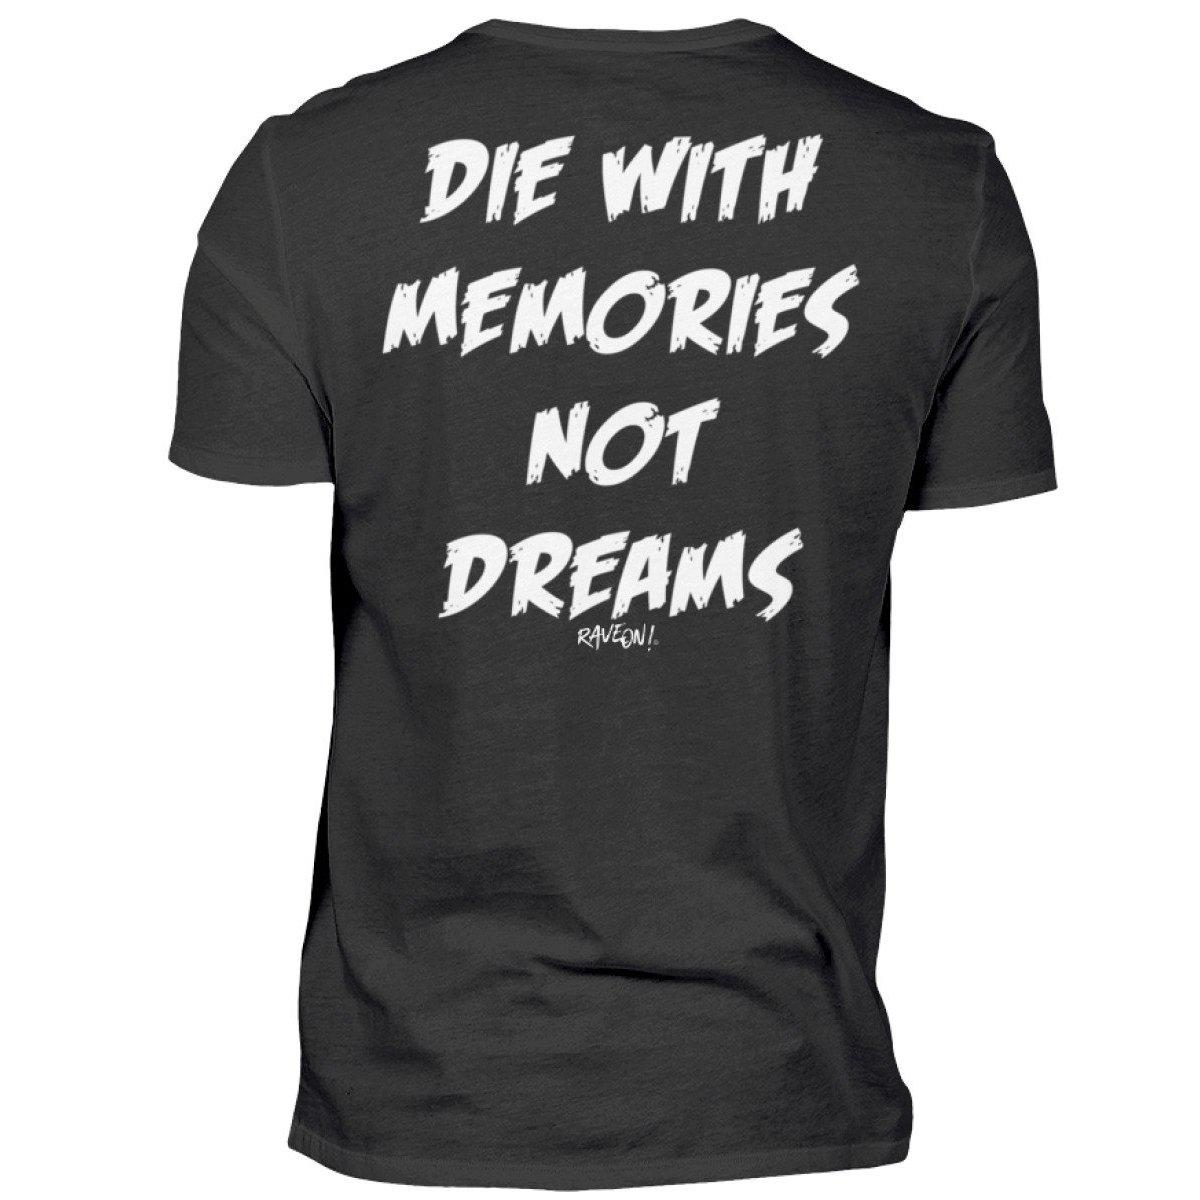 DIE WITH MEMORIES NOT Dreams - Rave On!® - Premiumshirt Herren Premium Shirt Black / S - Rave On!® der Club & Techno Szene Shop für Coole Junge Mode Streetwear Style & Fashion Outfits + Sexy Festival 420 Stuff